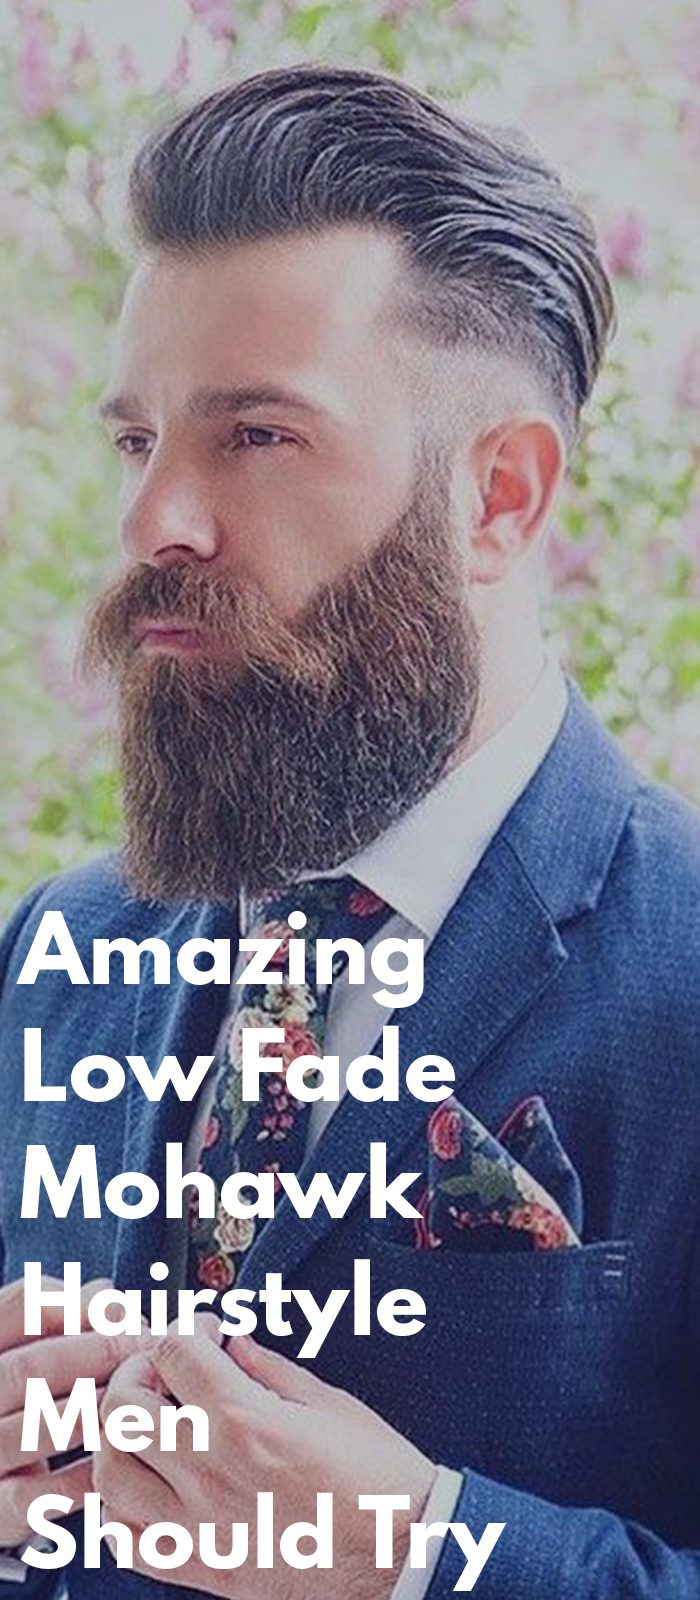 Amazing Low Fade Mohawk Hairstyle Men Should Try